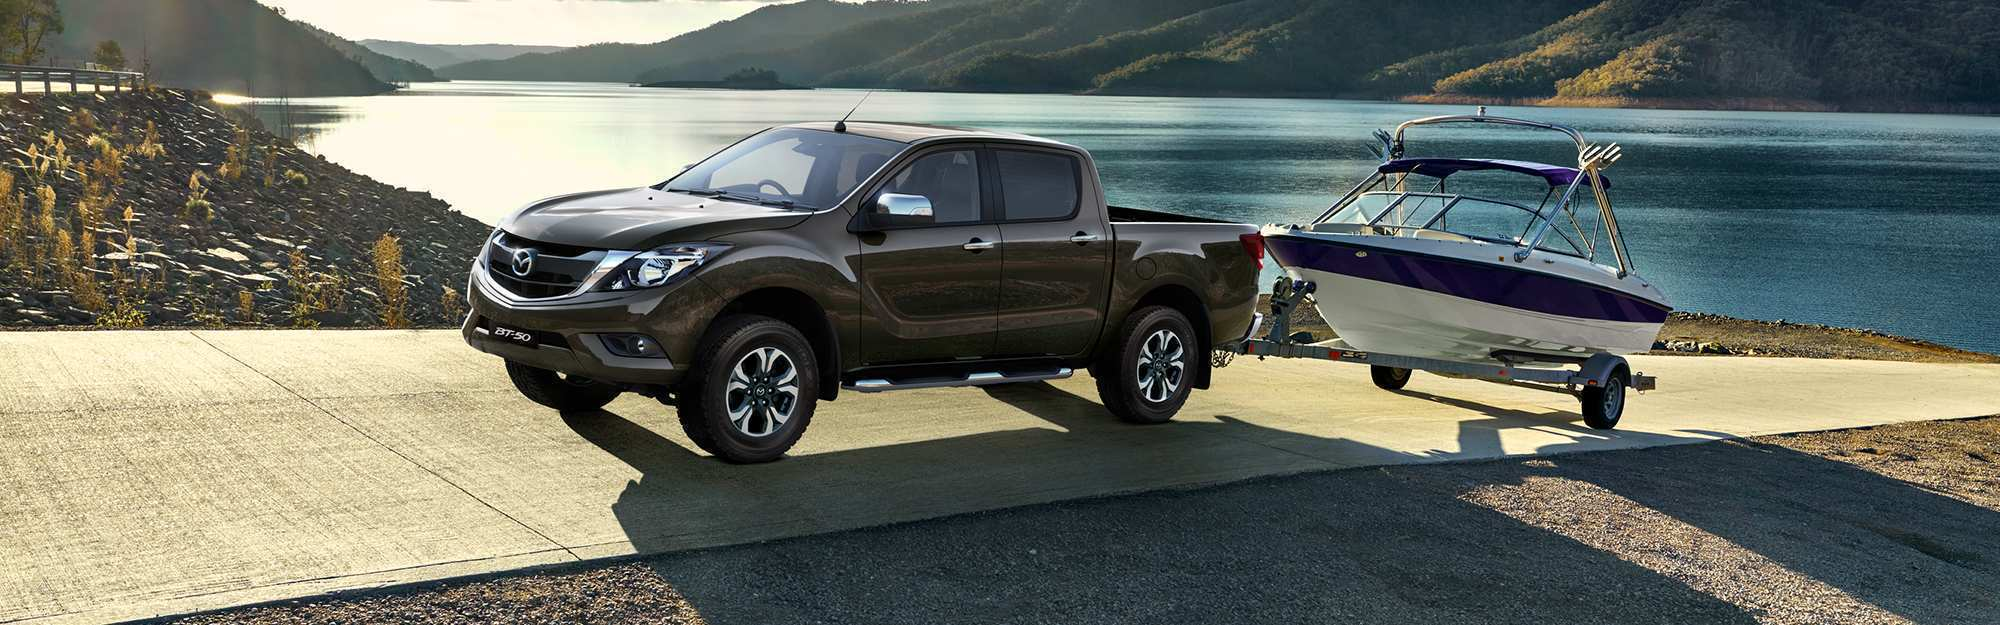 27 New Mazda Pickup Truck 2019 Spy Shoot